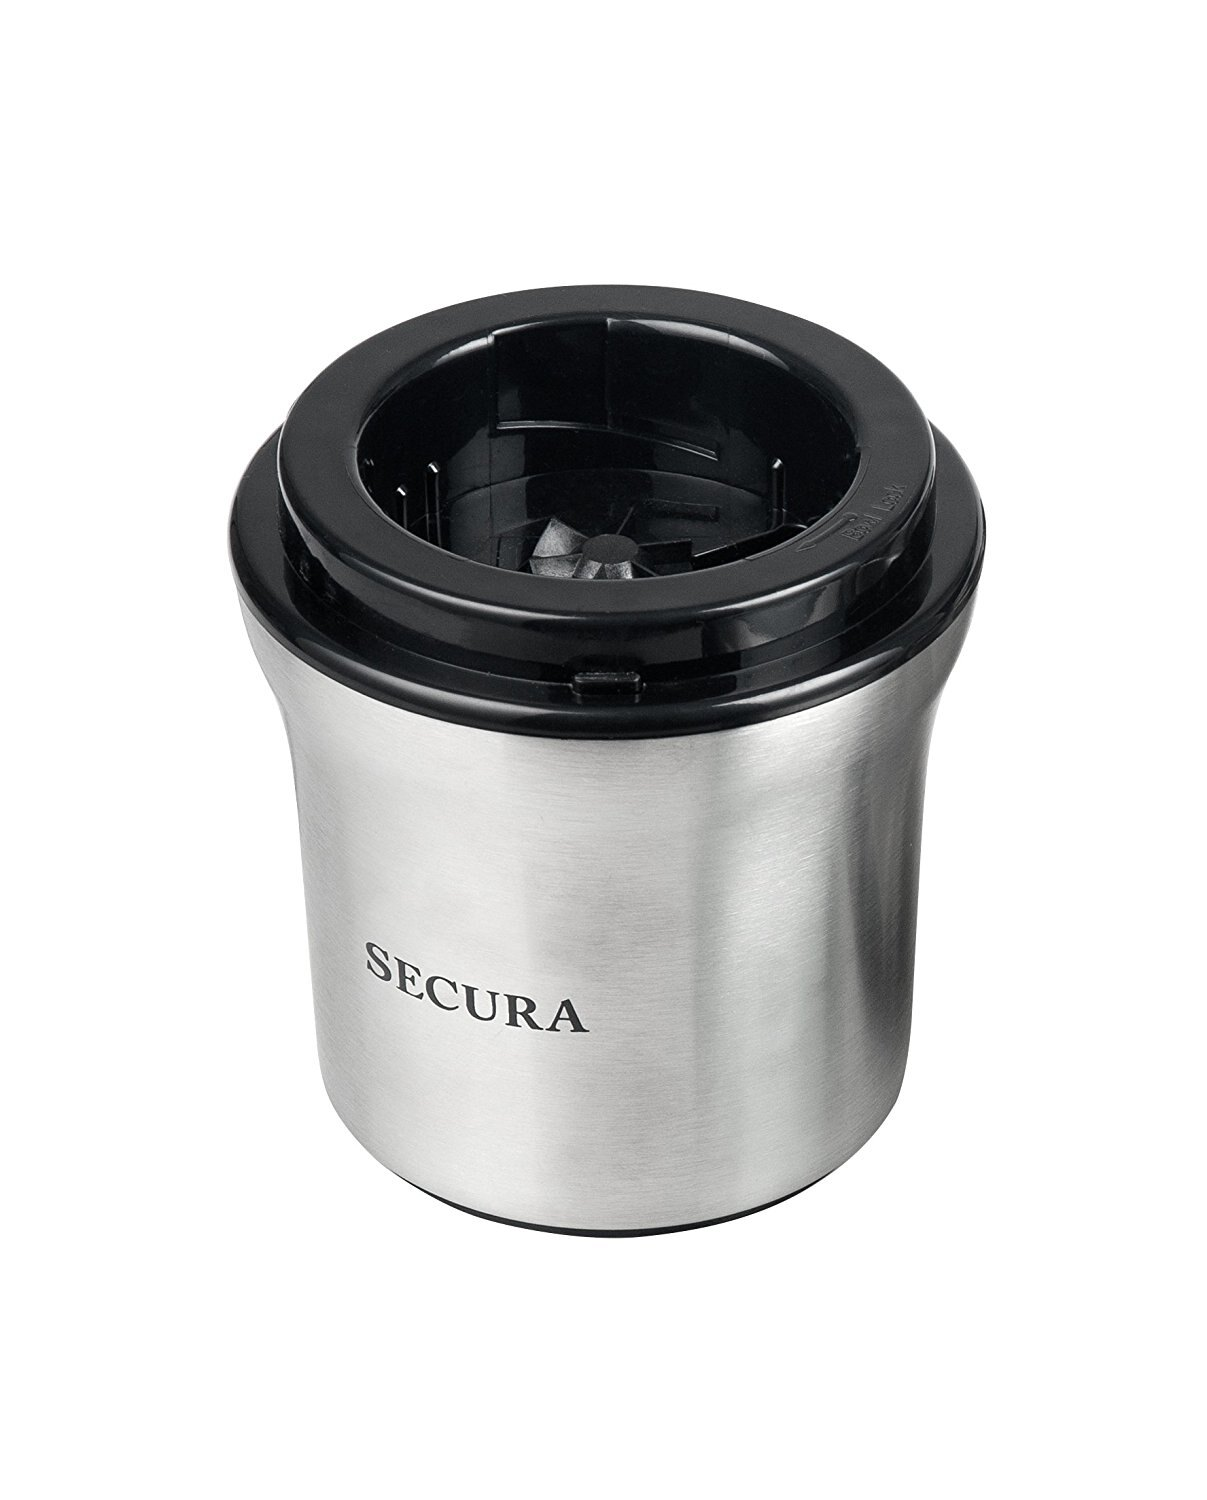 Secura Electric Coffee and Spice Grinder with Stainless Steel Blades Removable Bowl 3